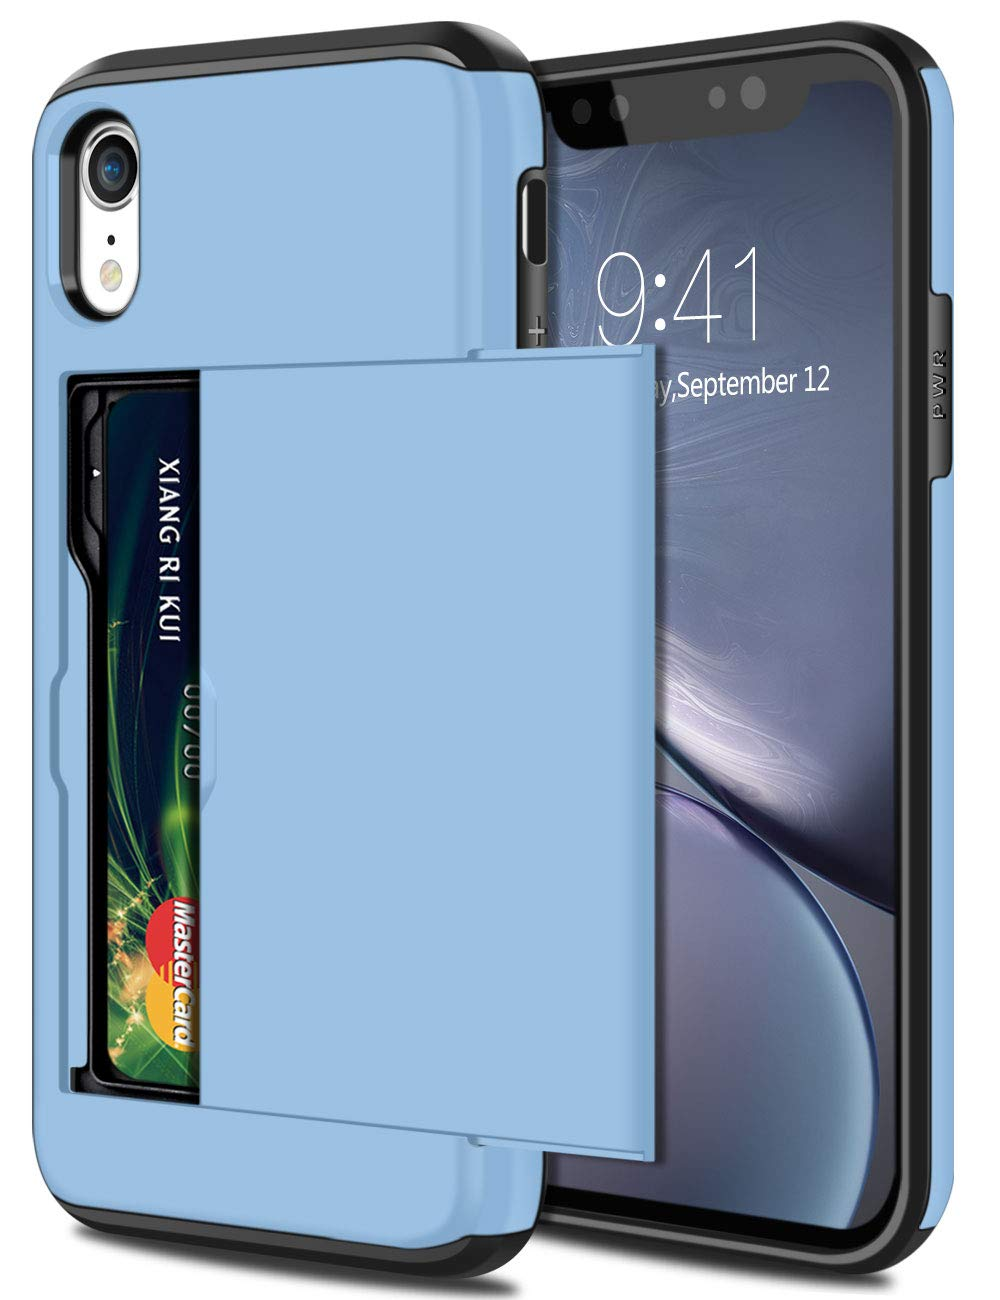 SAMONPOW Wallet Case for iPhone XR Case with Card Holder Protective Case Dual Layer Shockproof Hard PC Soft Hybrid Rubber Anti Scratch Case for iPhone XR 6.1 inch Light Blue